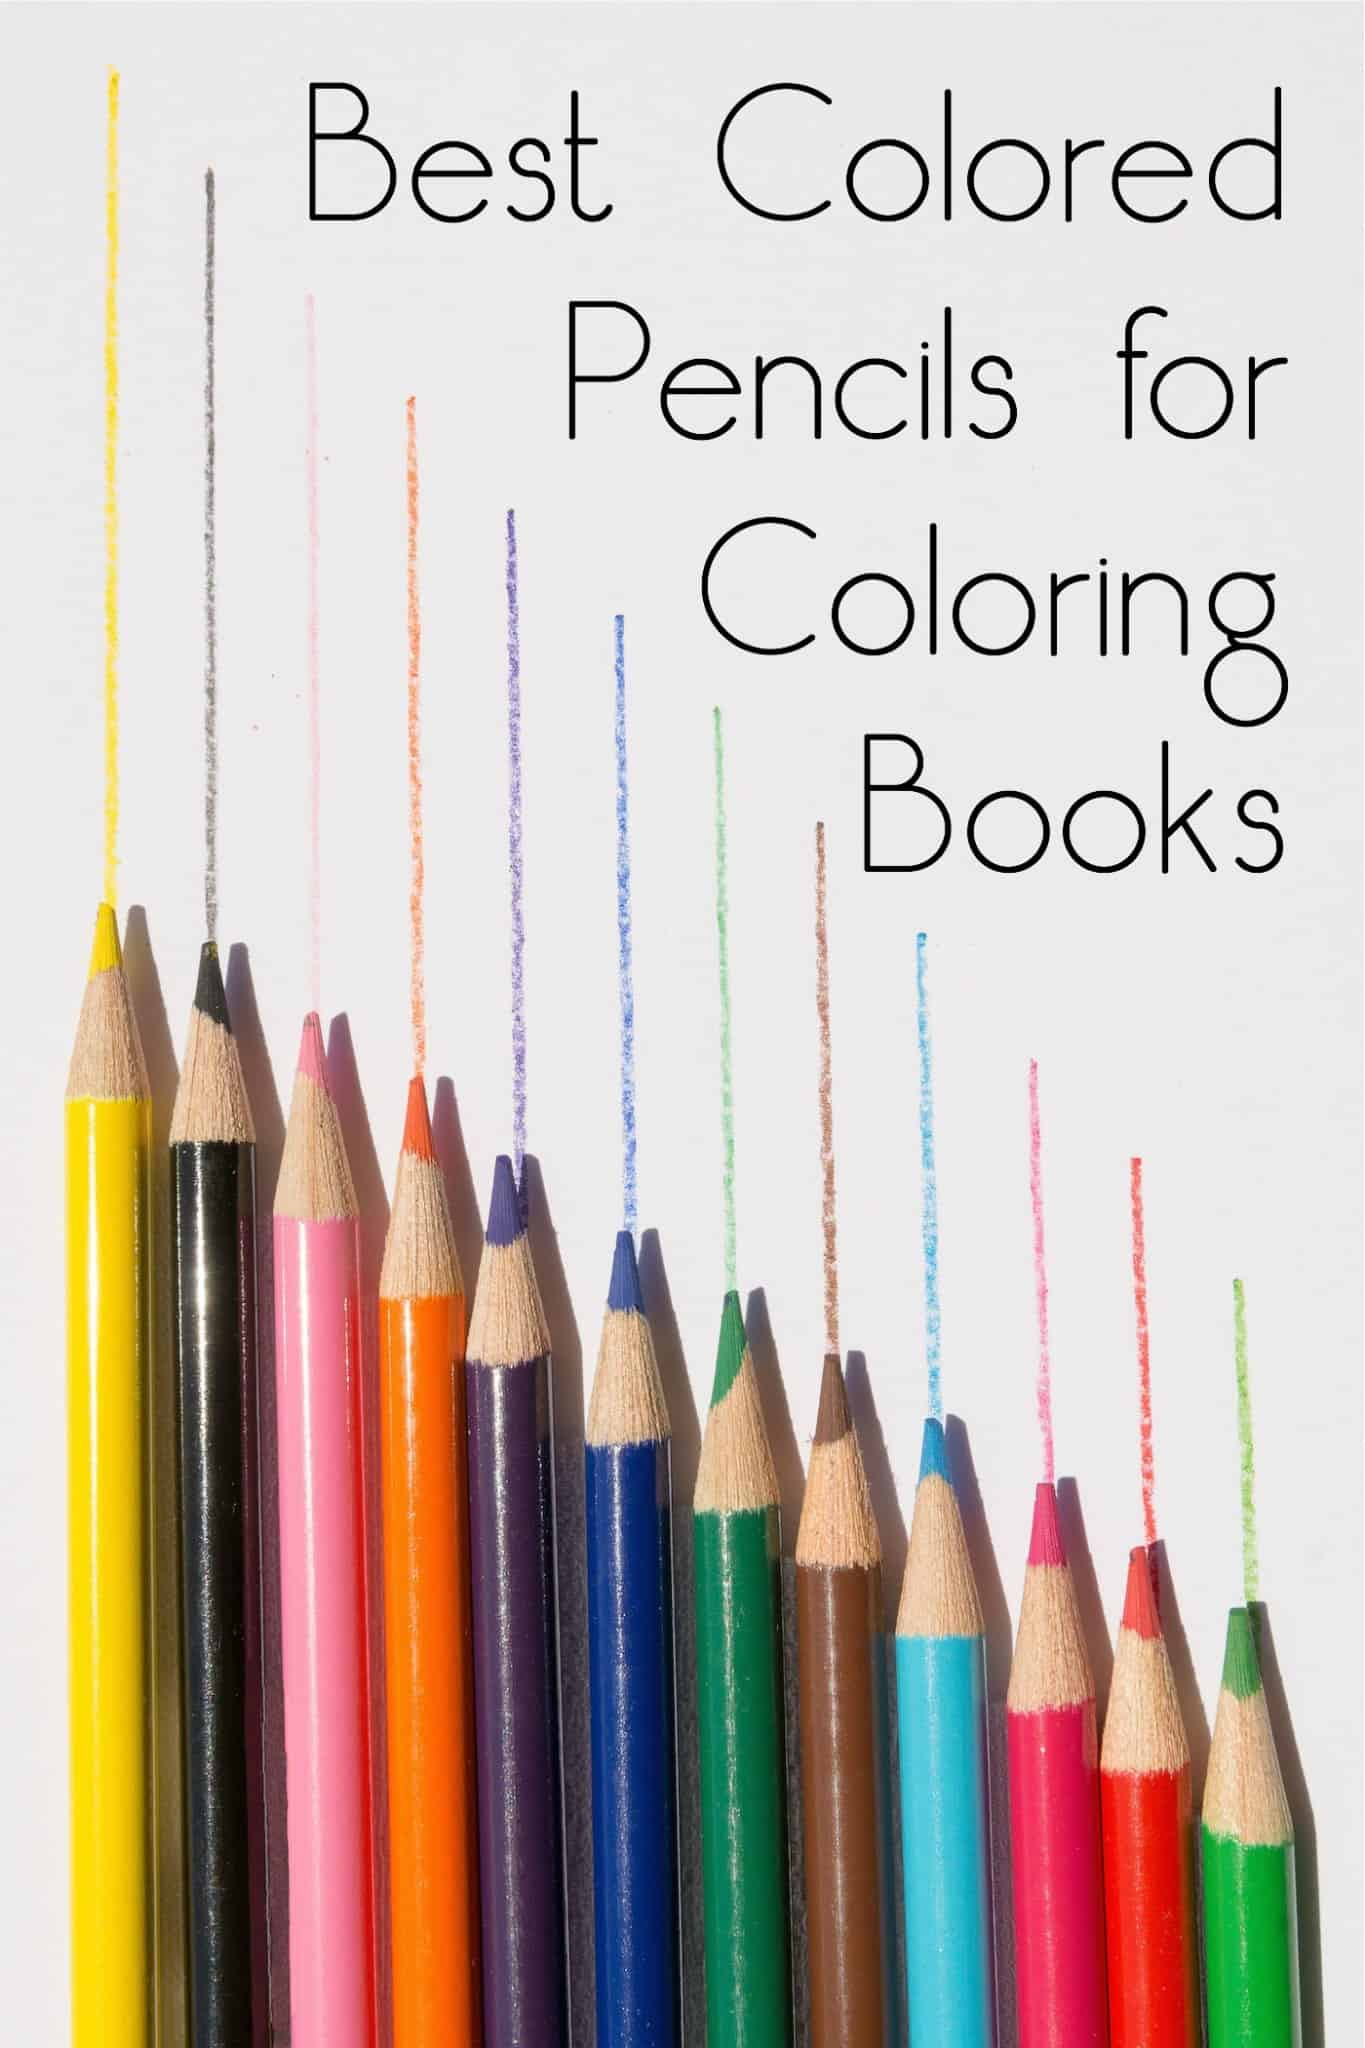 Colored Pencil Coloring Books  Best Colored Pencils for Coloring Books diycandy